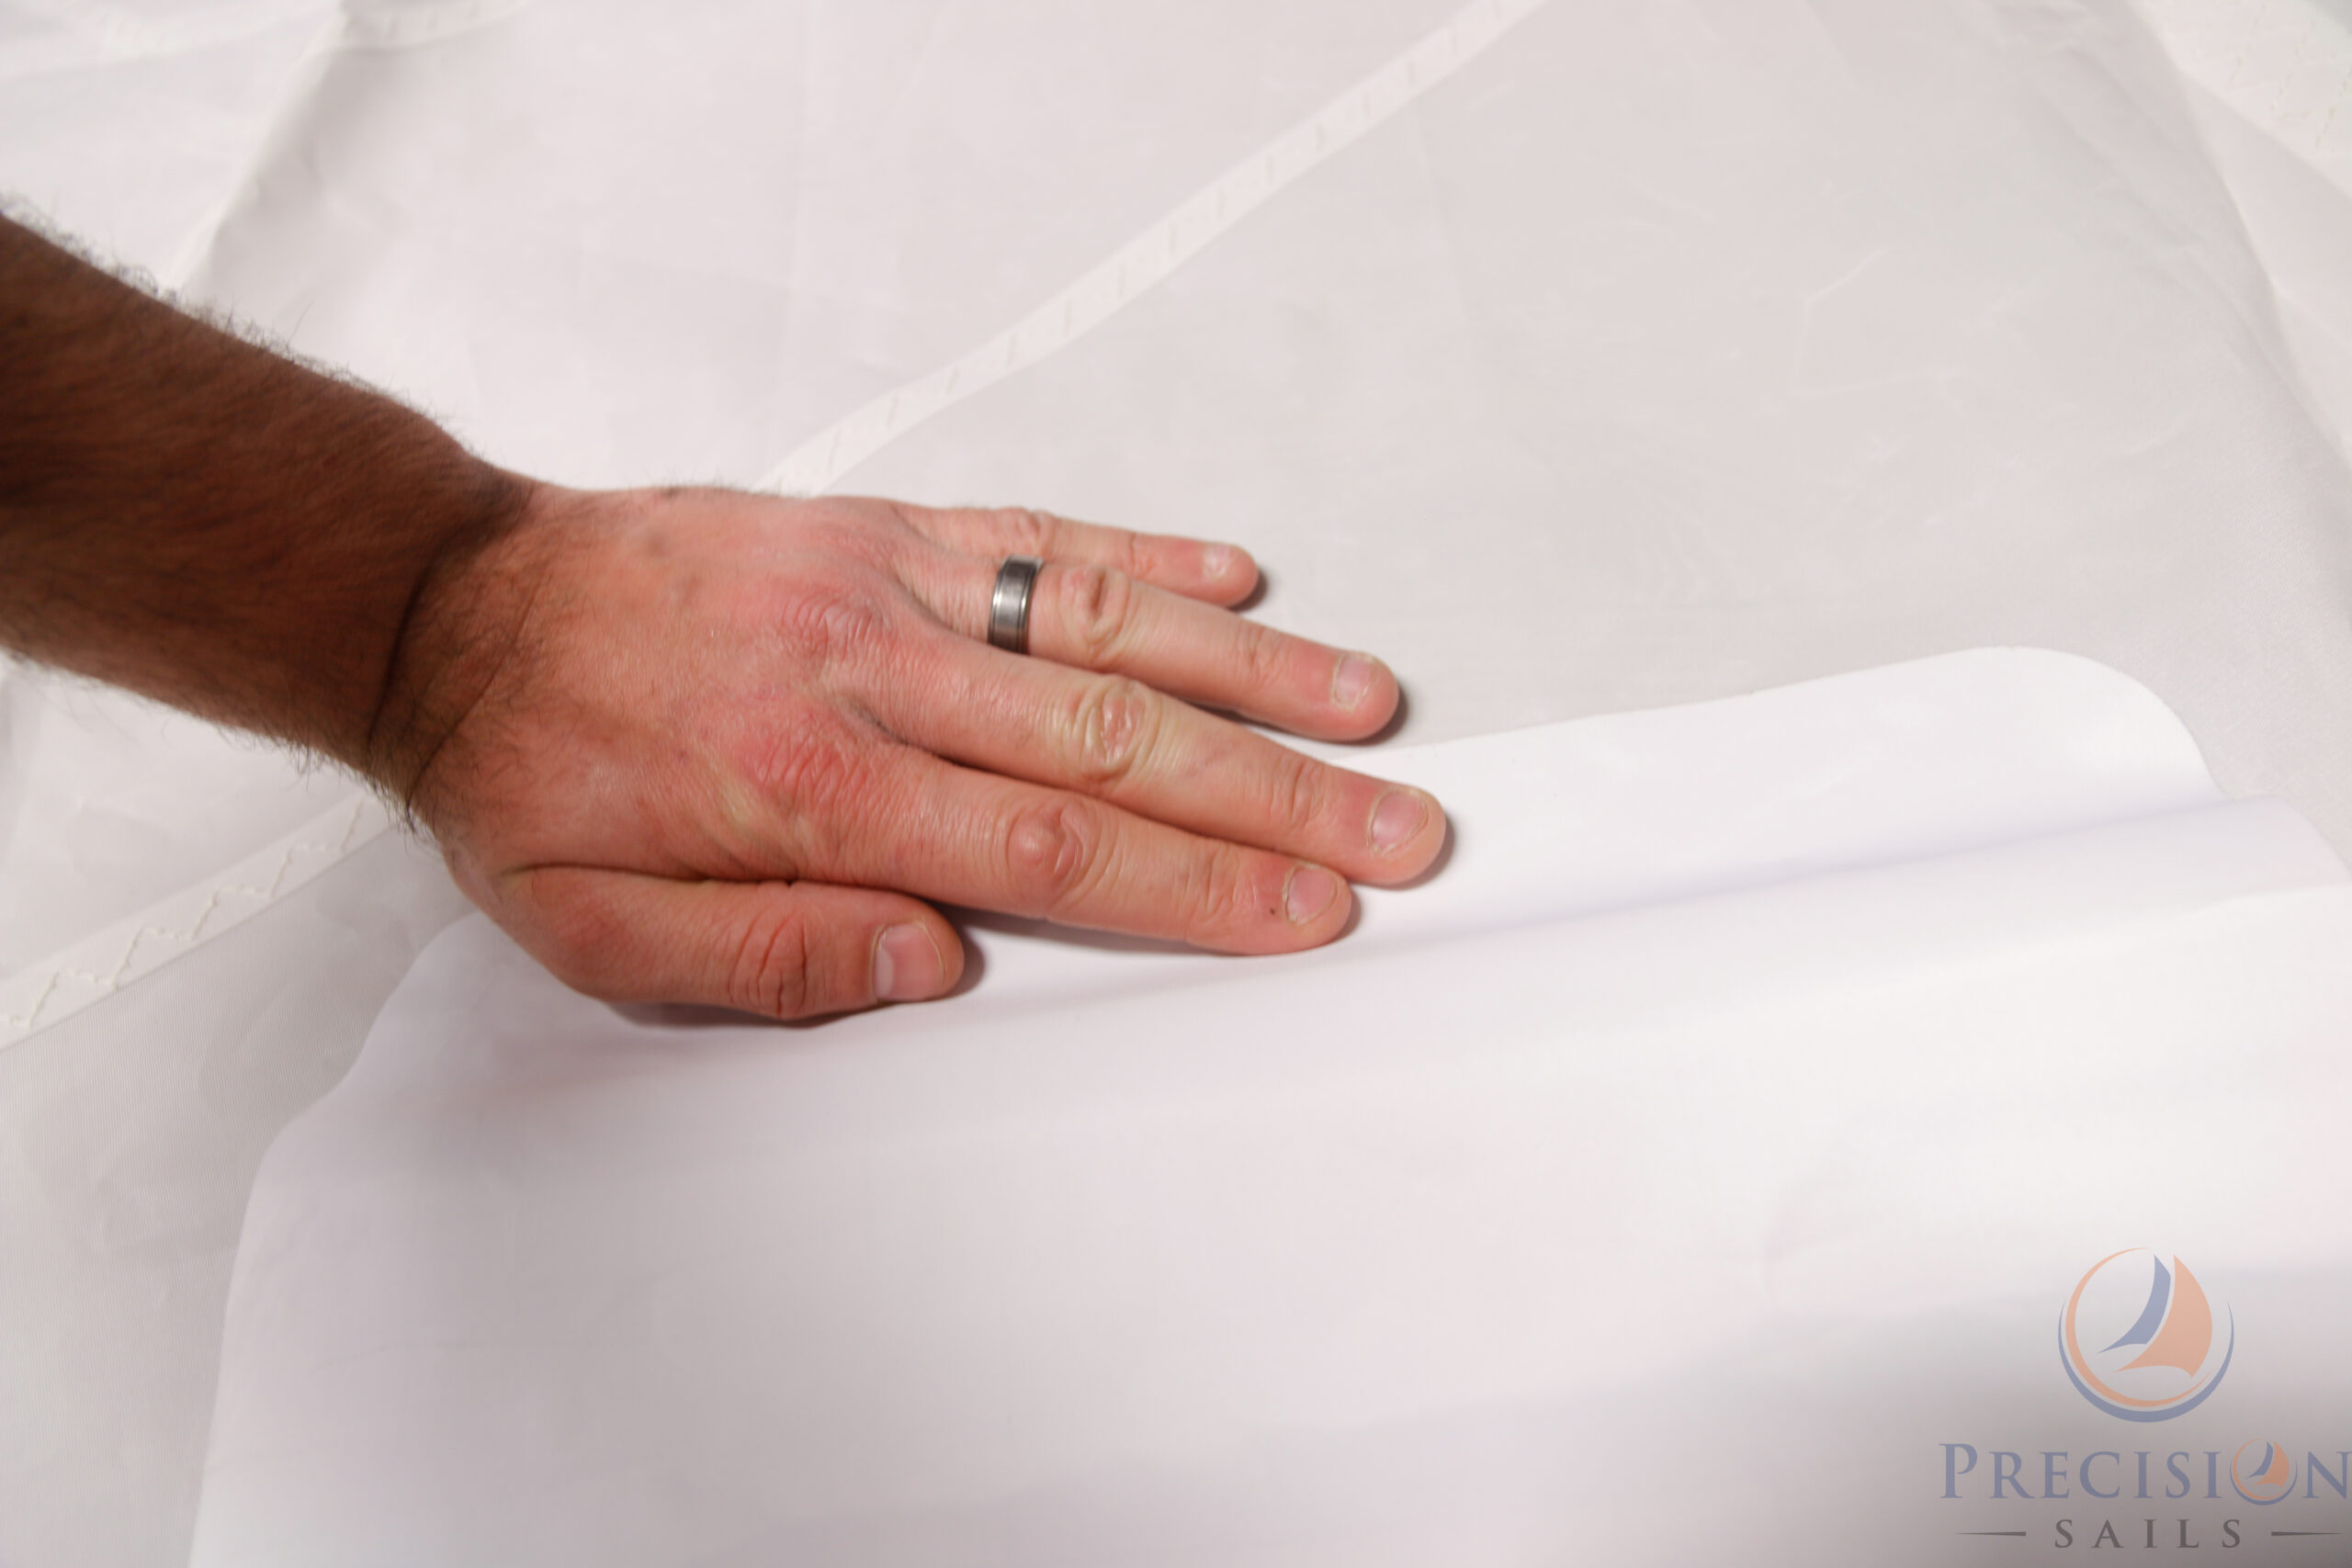 Apply Spreader Patch to Edge of Sail